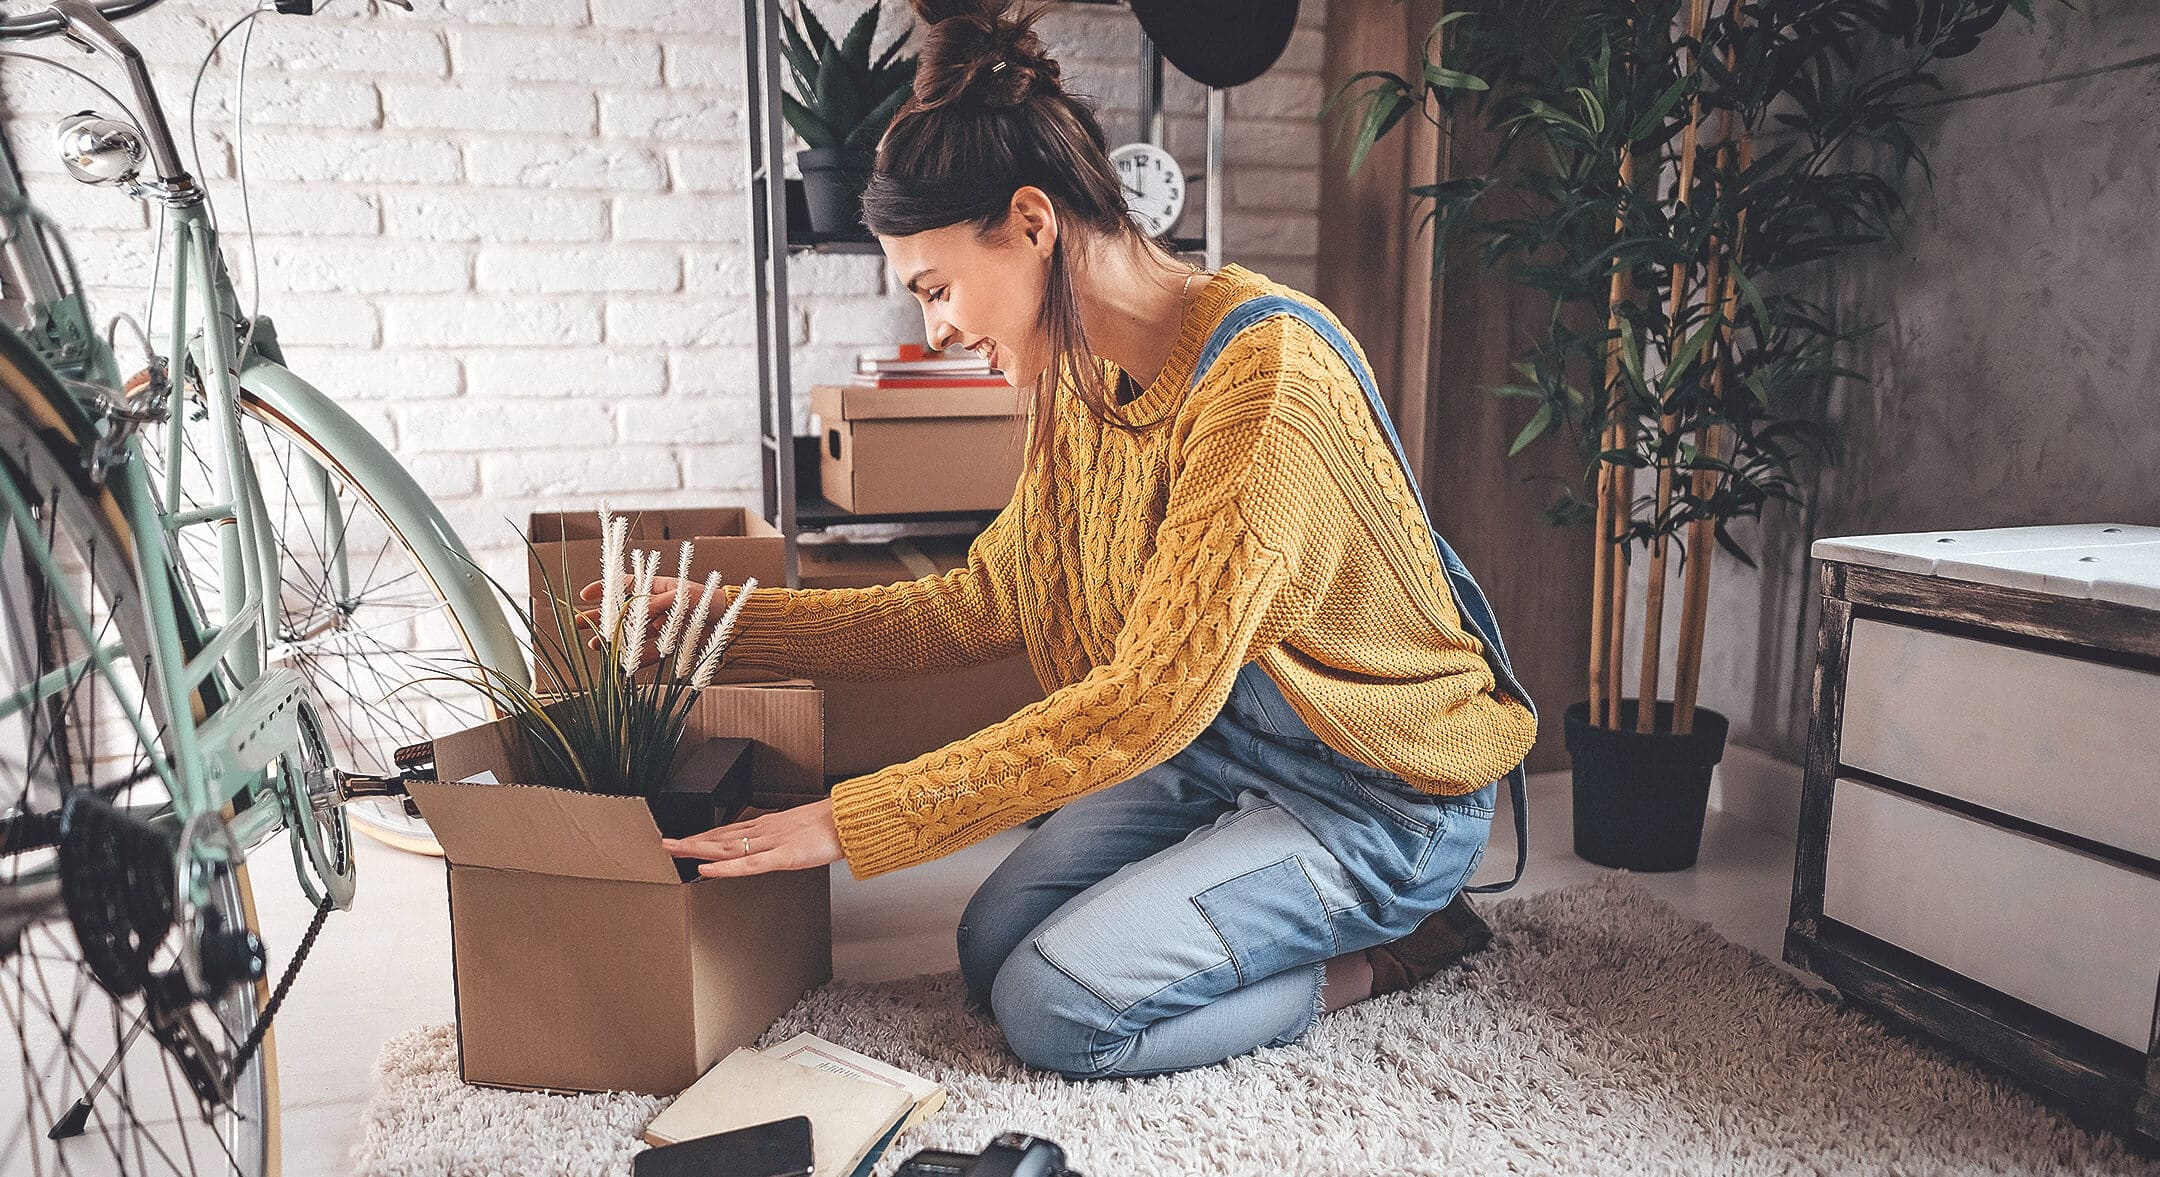 A Woman packing up her belongings before moving into her new home.